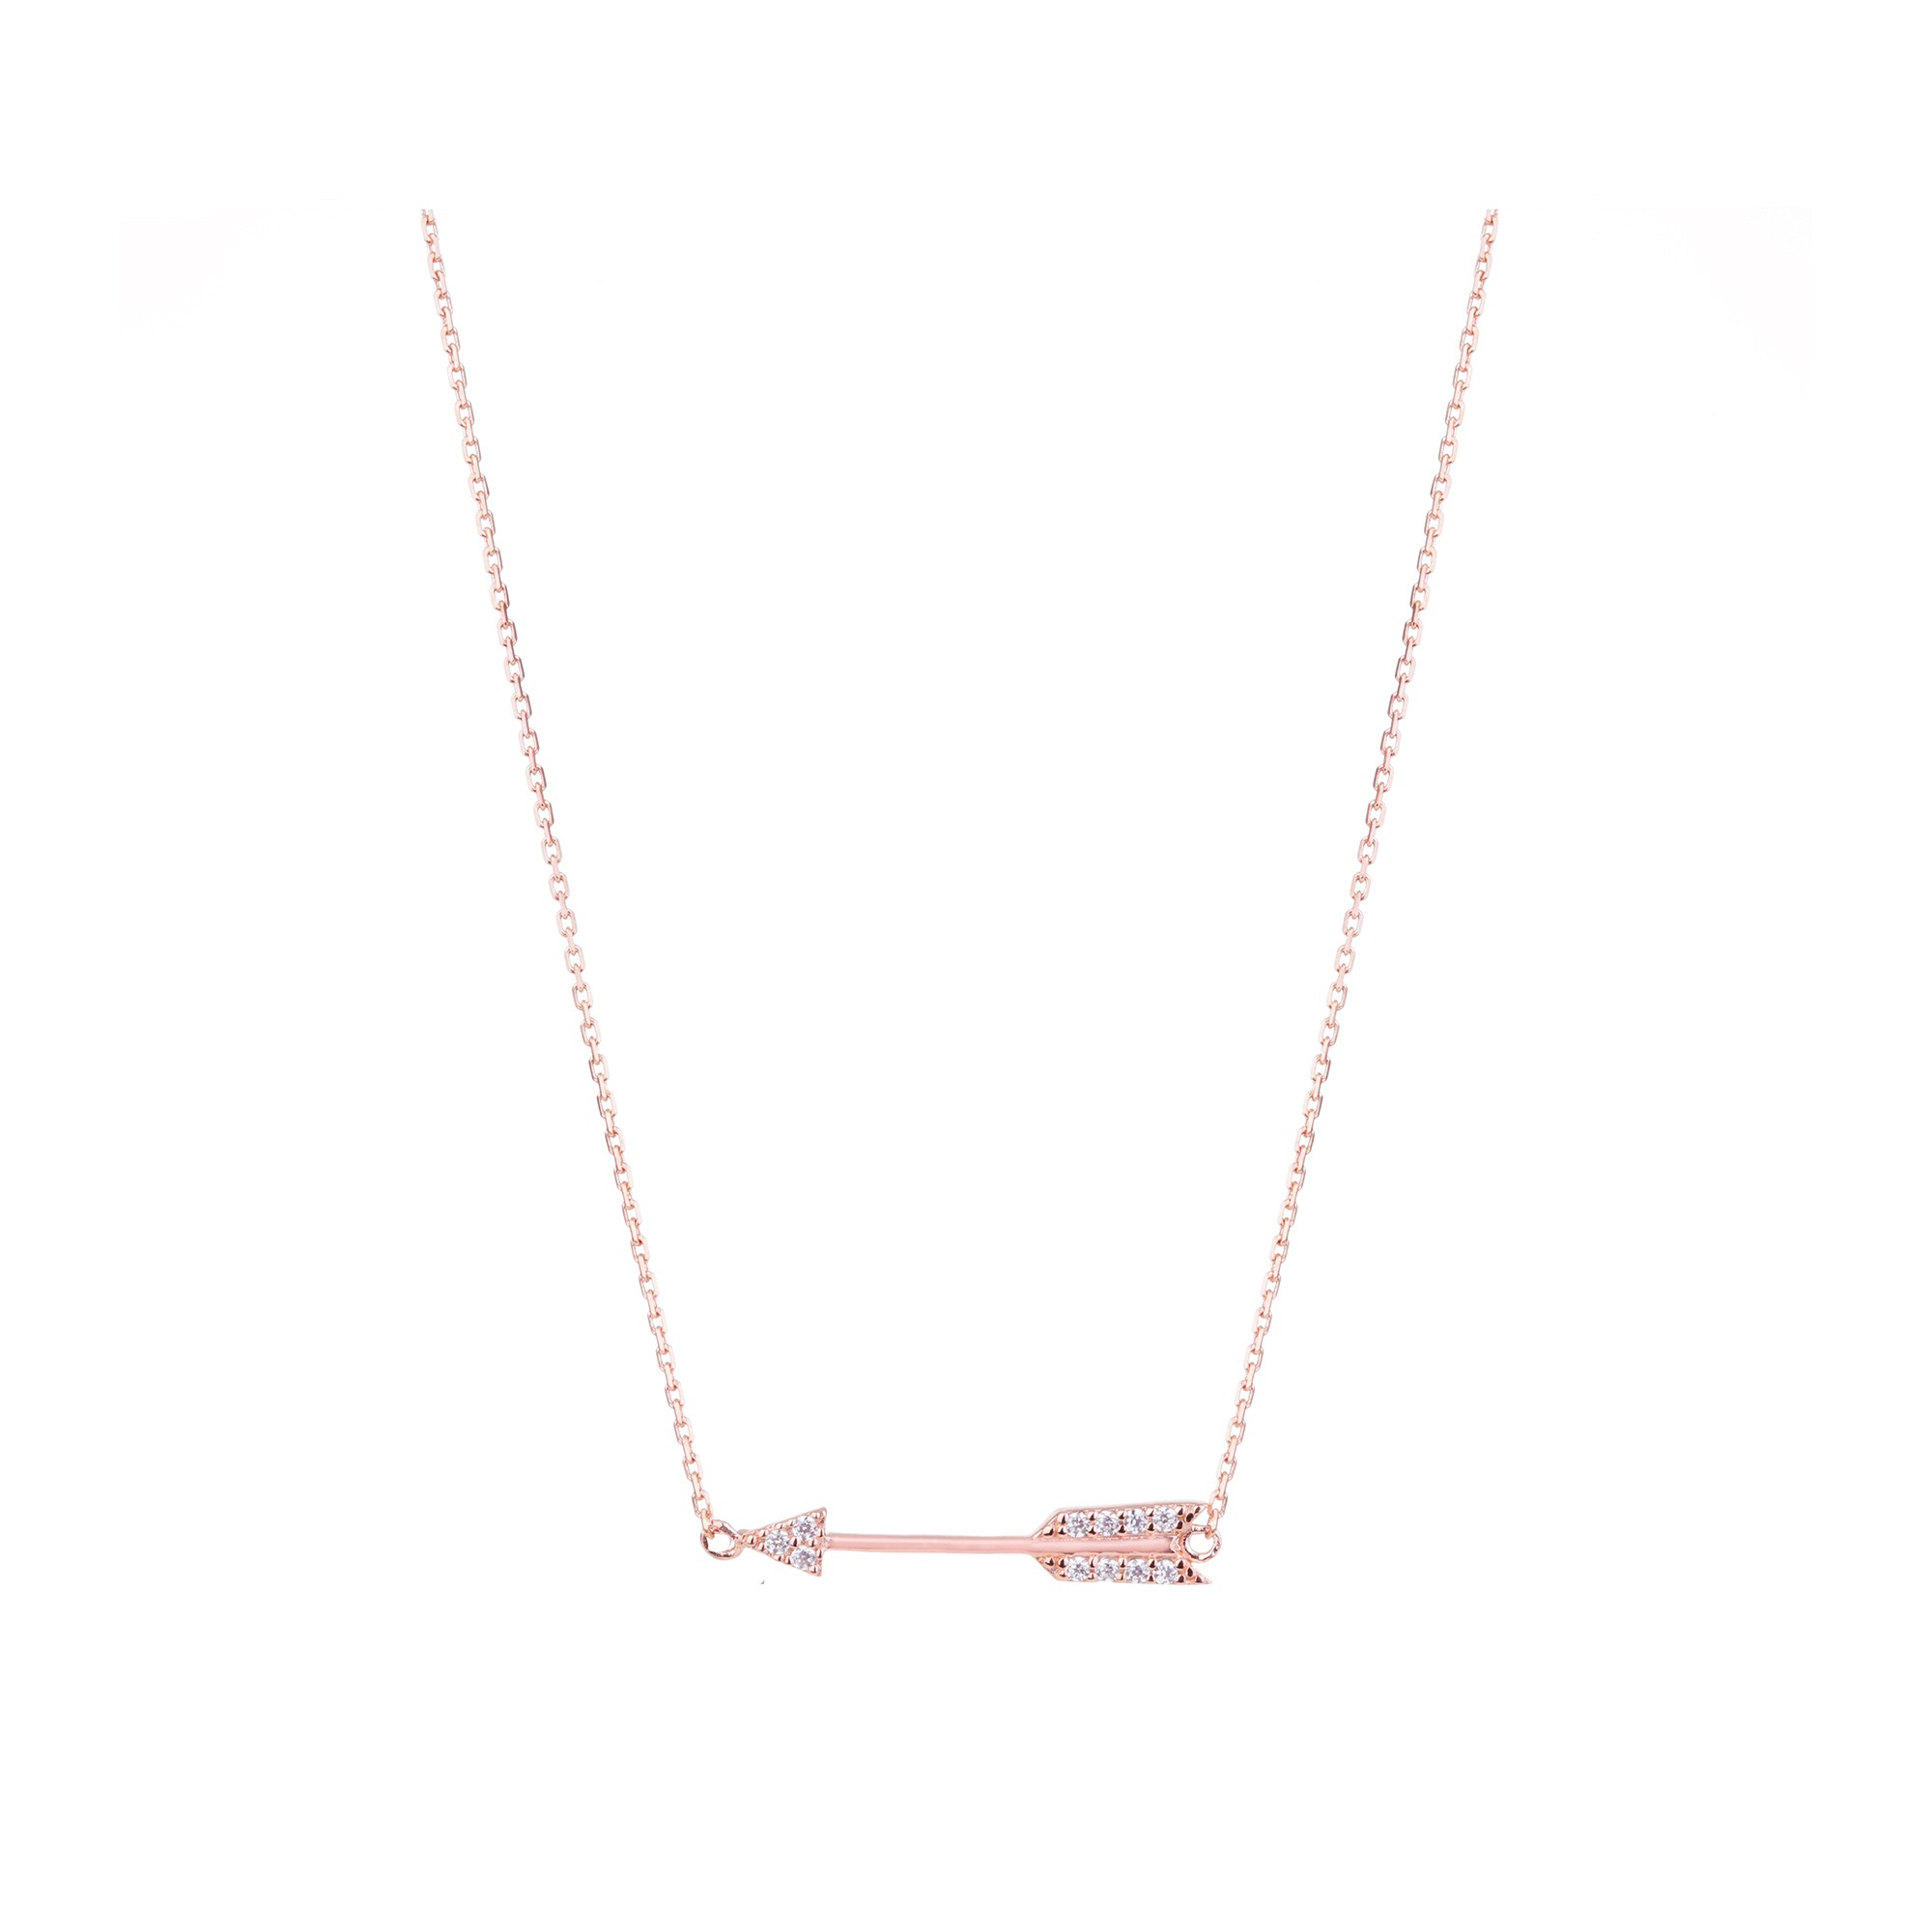 Rose Gold Plated 925 Sterling Silver Cz Mini Arrow Necklace In Most Current Sparkling Arrow Necklaces (Gallery 24 of 25)